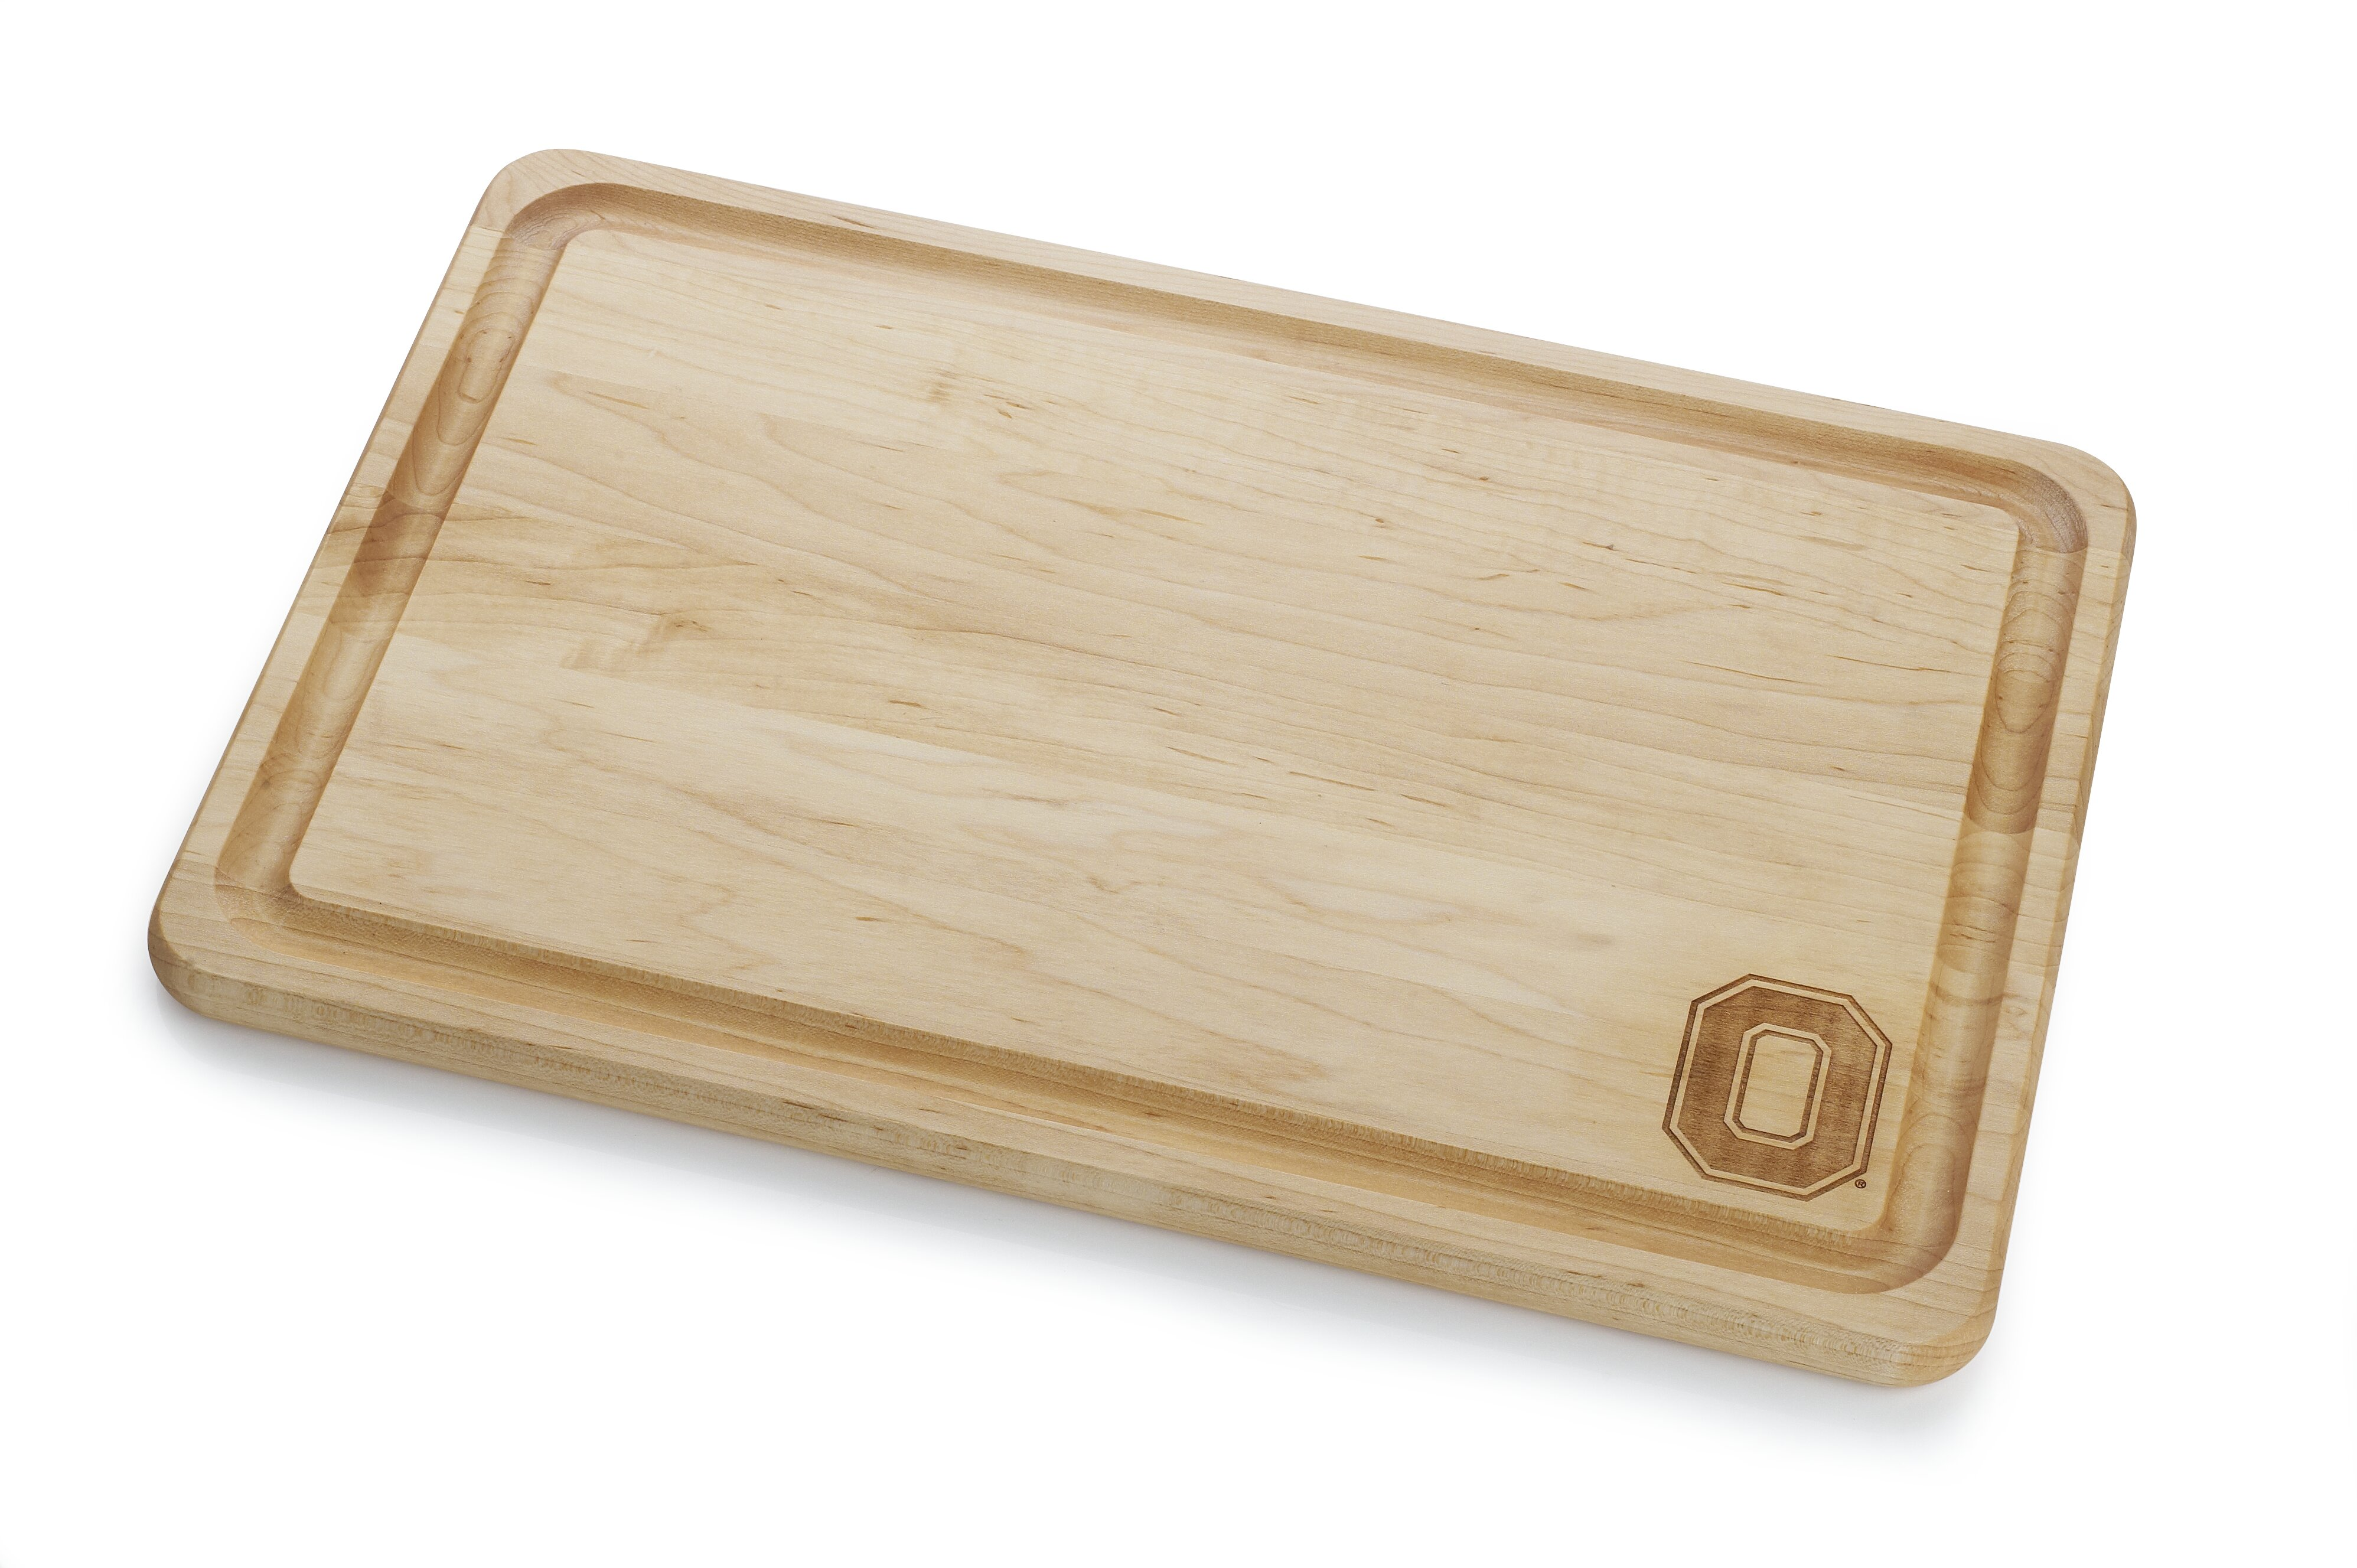 warther boards ohio state engraved wood cutting board wayfair